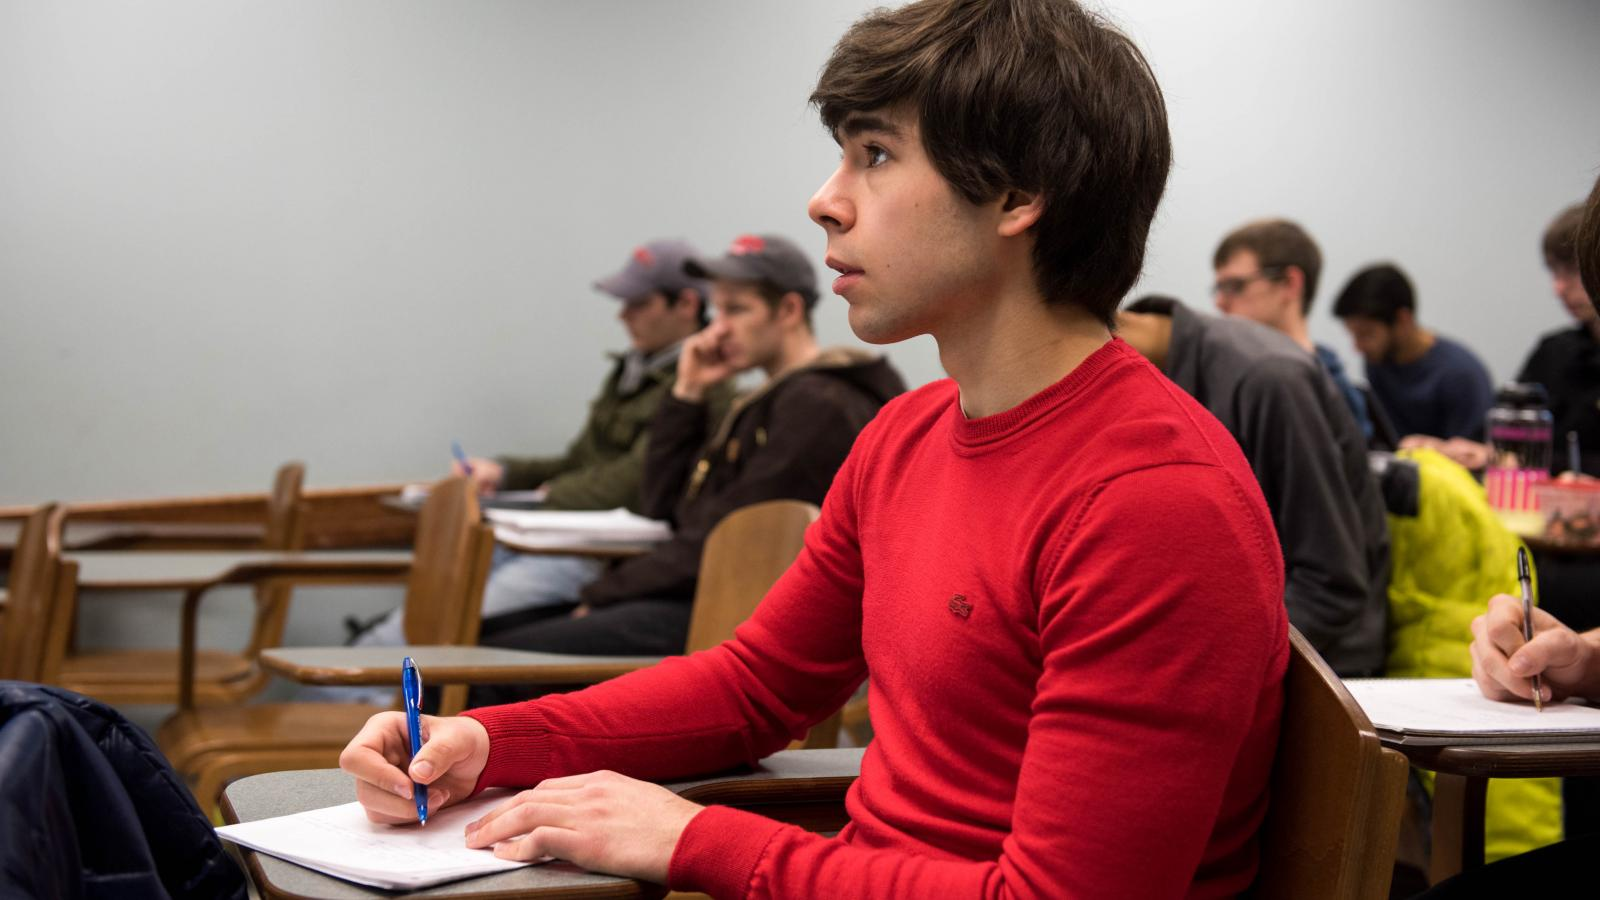 Young man taking notes